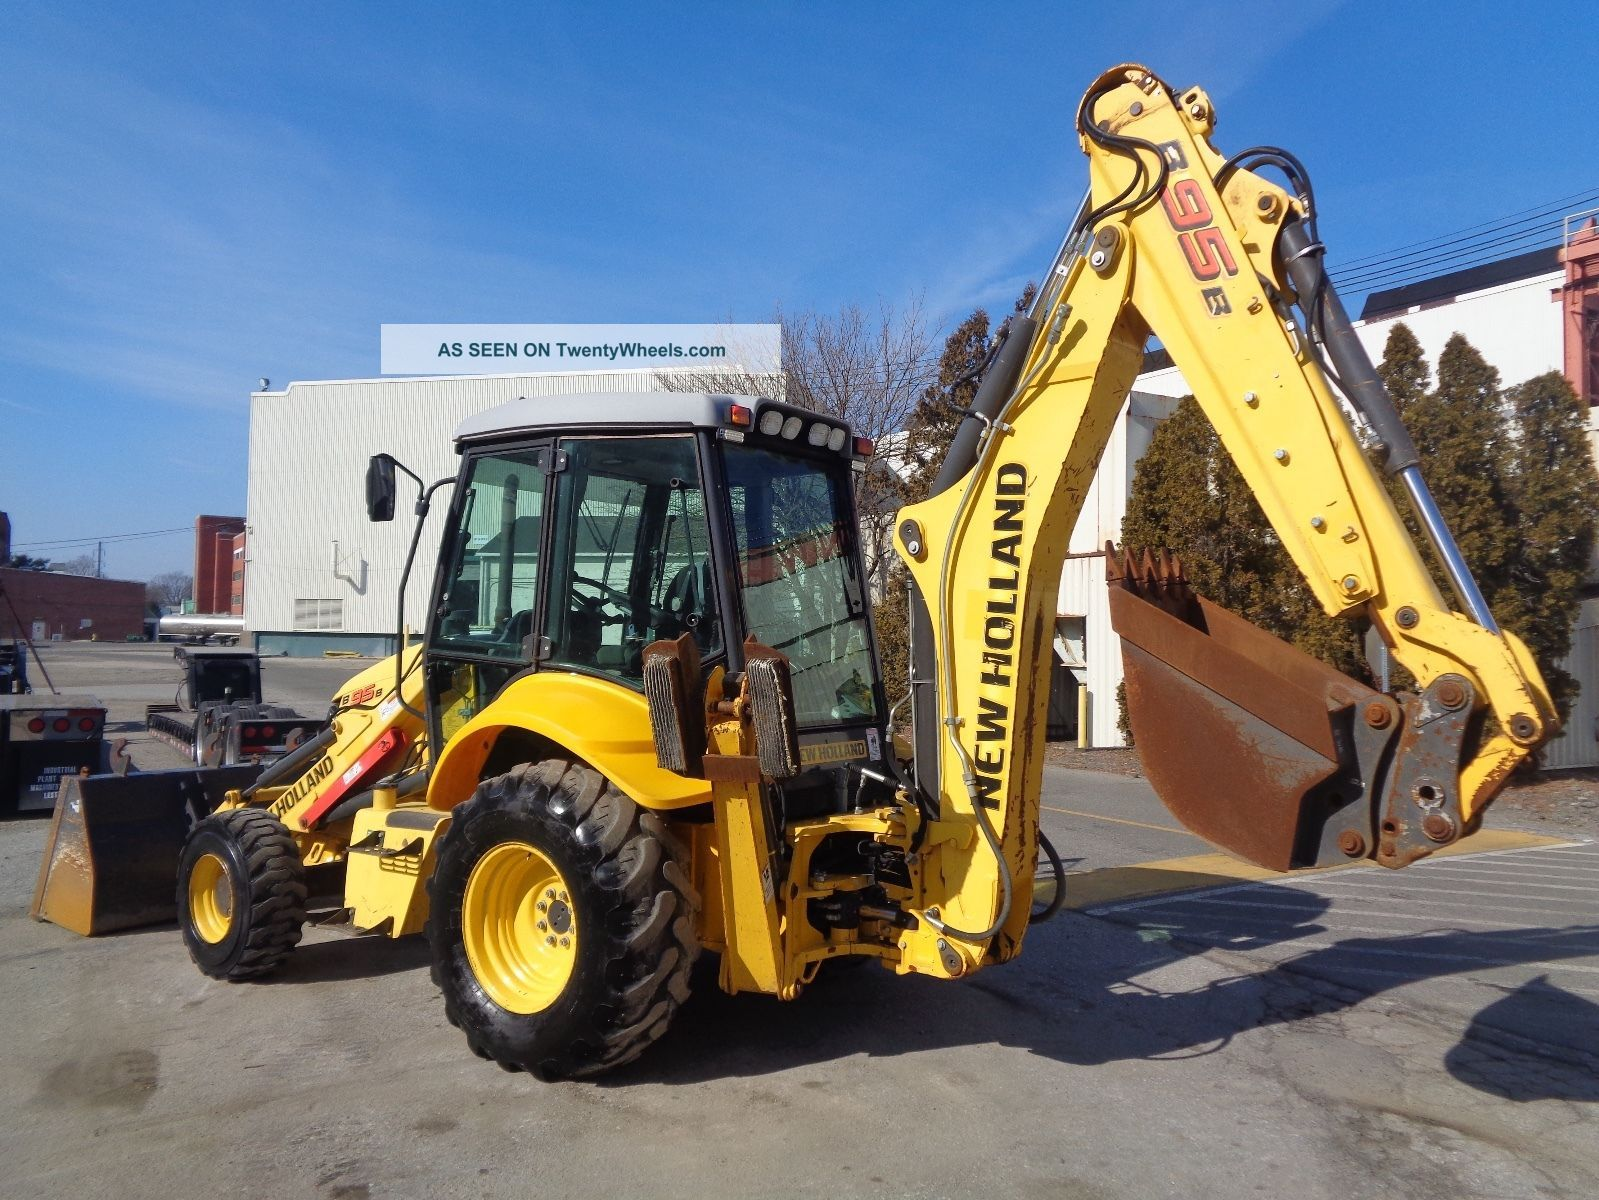 2010 Holland B95b Loader Backhoe - 4x4 - Enclosed Cab - Extendahoe Backhoe Loaders photo